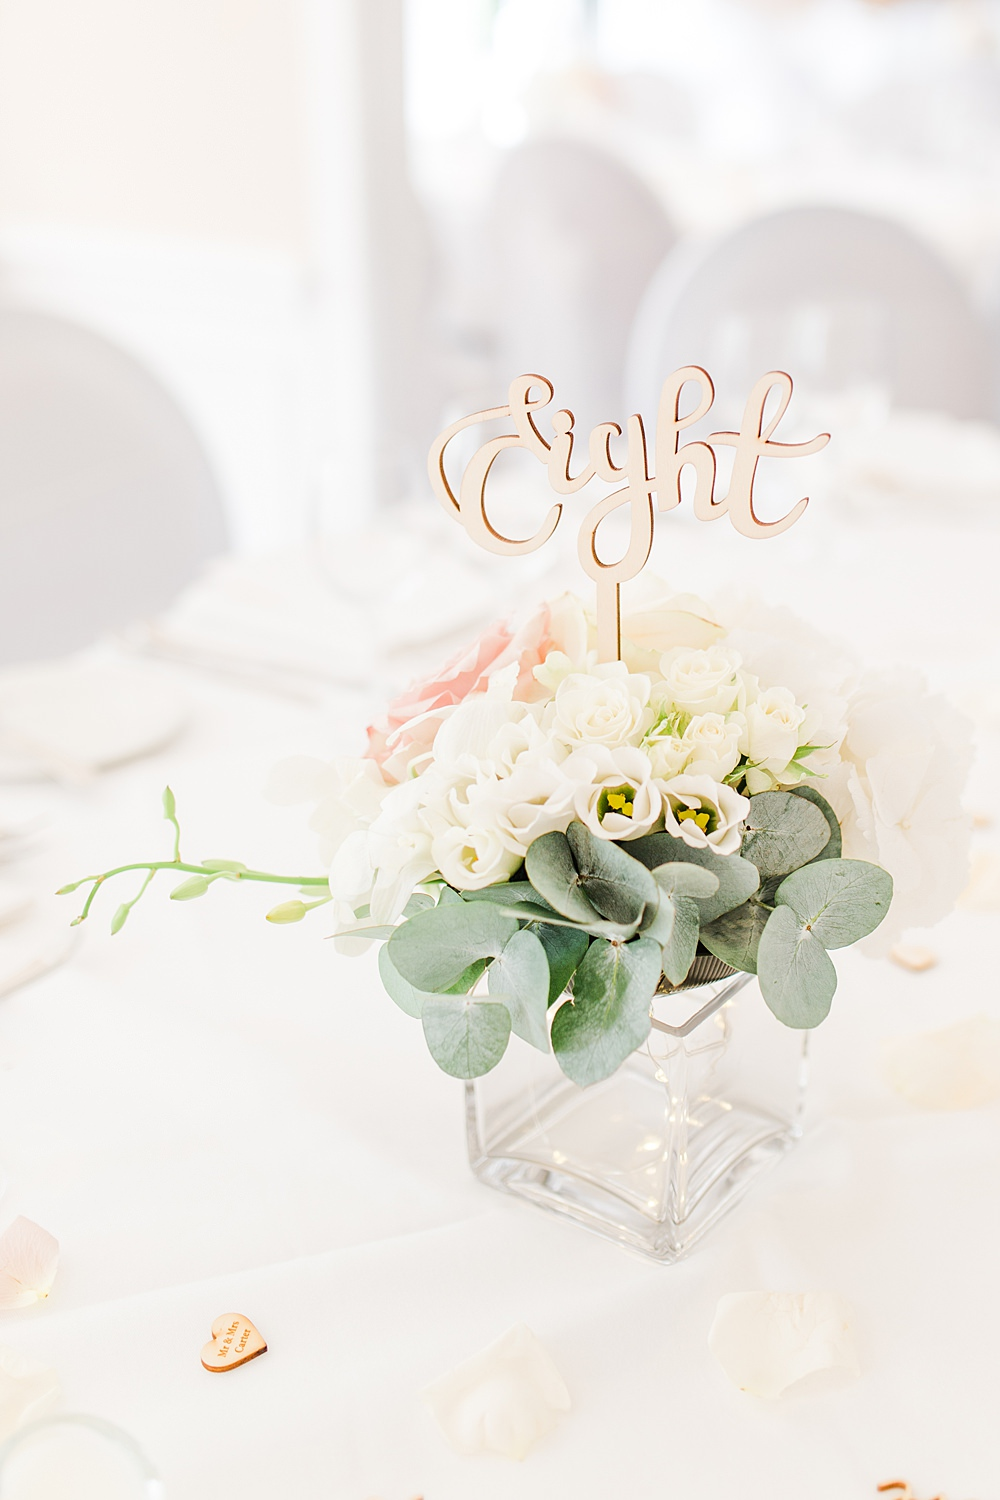 Table Flowers Decor Centrepiece Laser Cut Table Name Eucalyptus Rose Sheene Mill Wedding Terri & Lori Photography and Film Studio